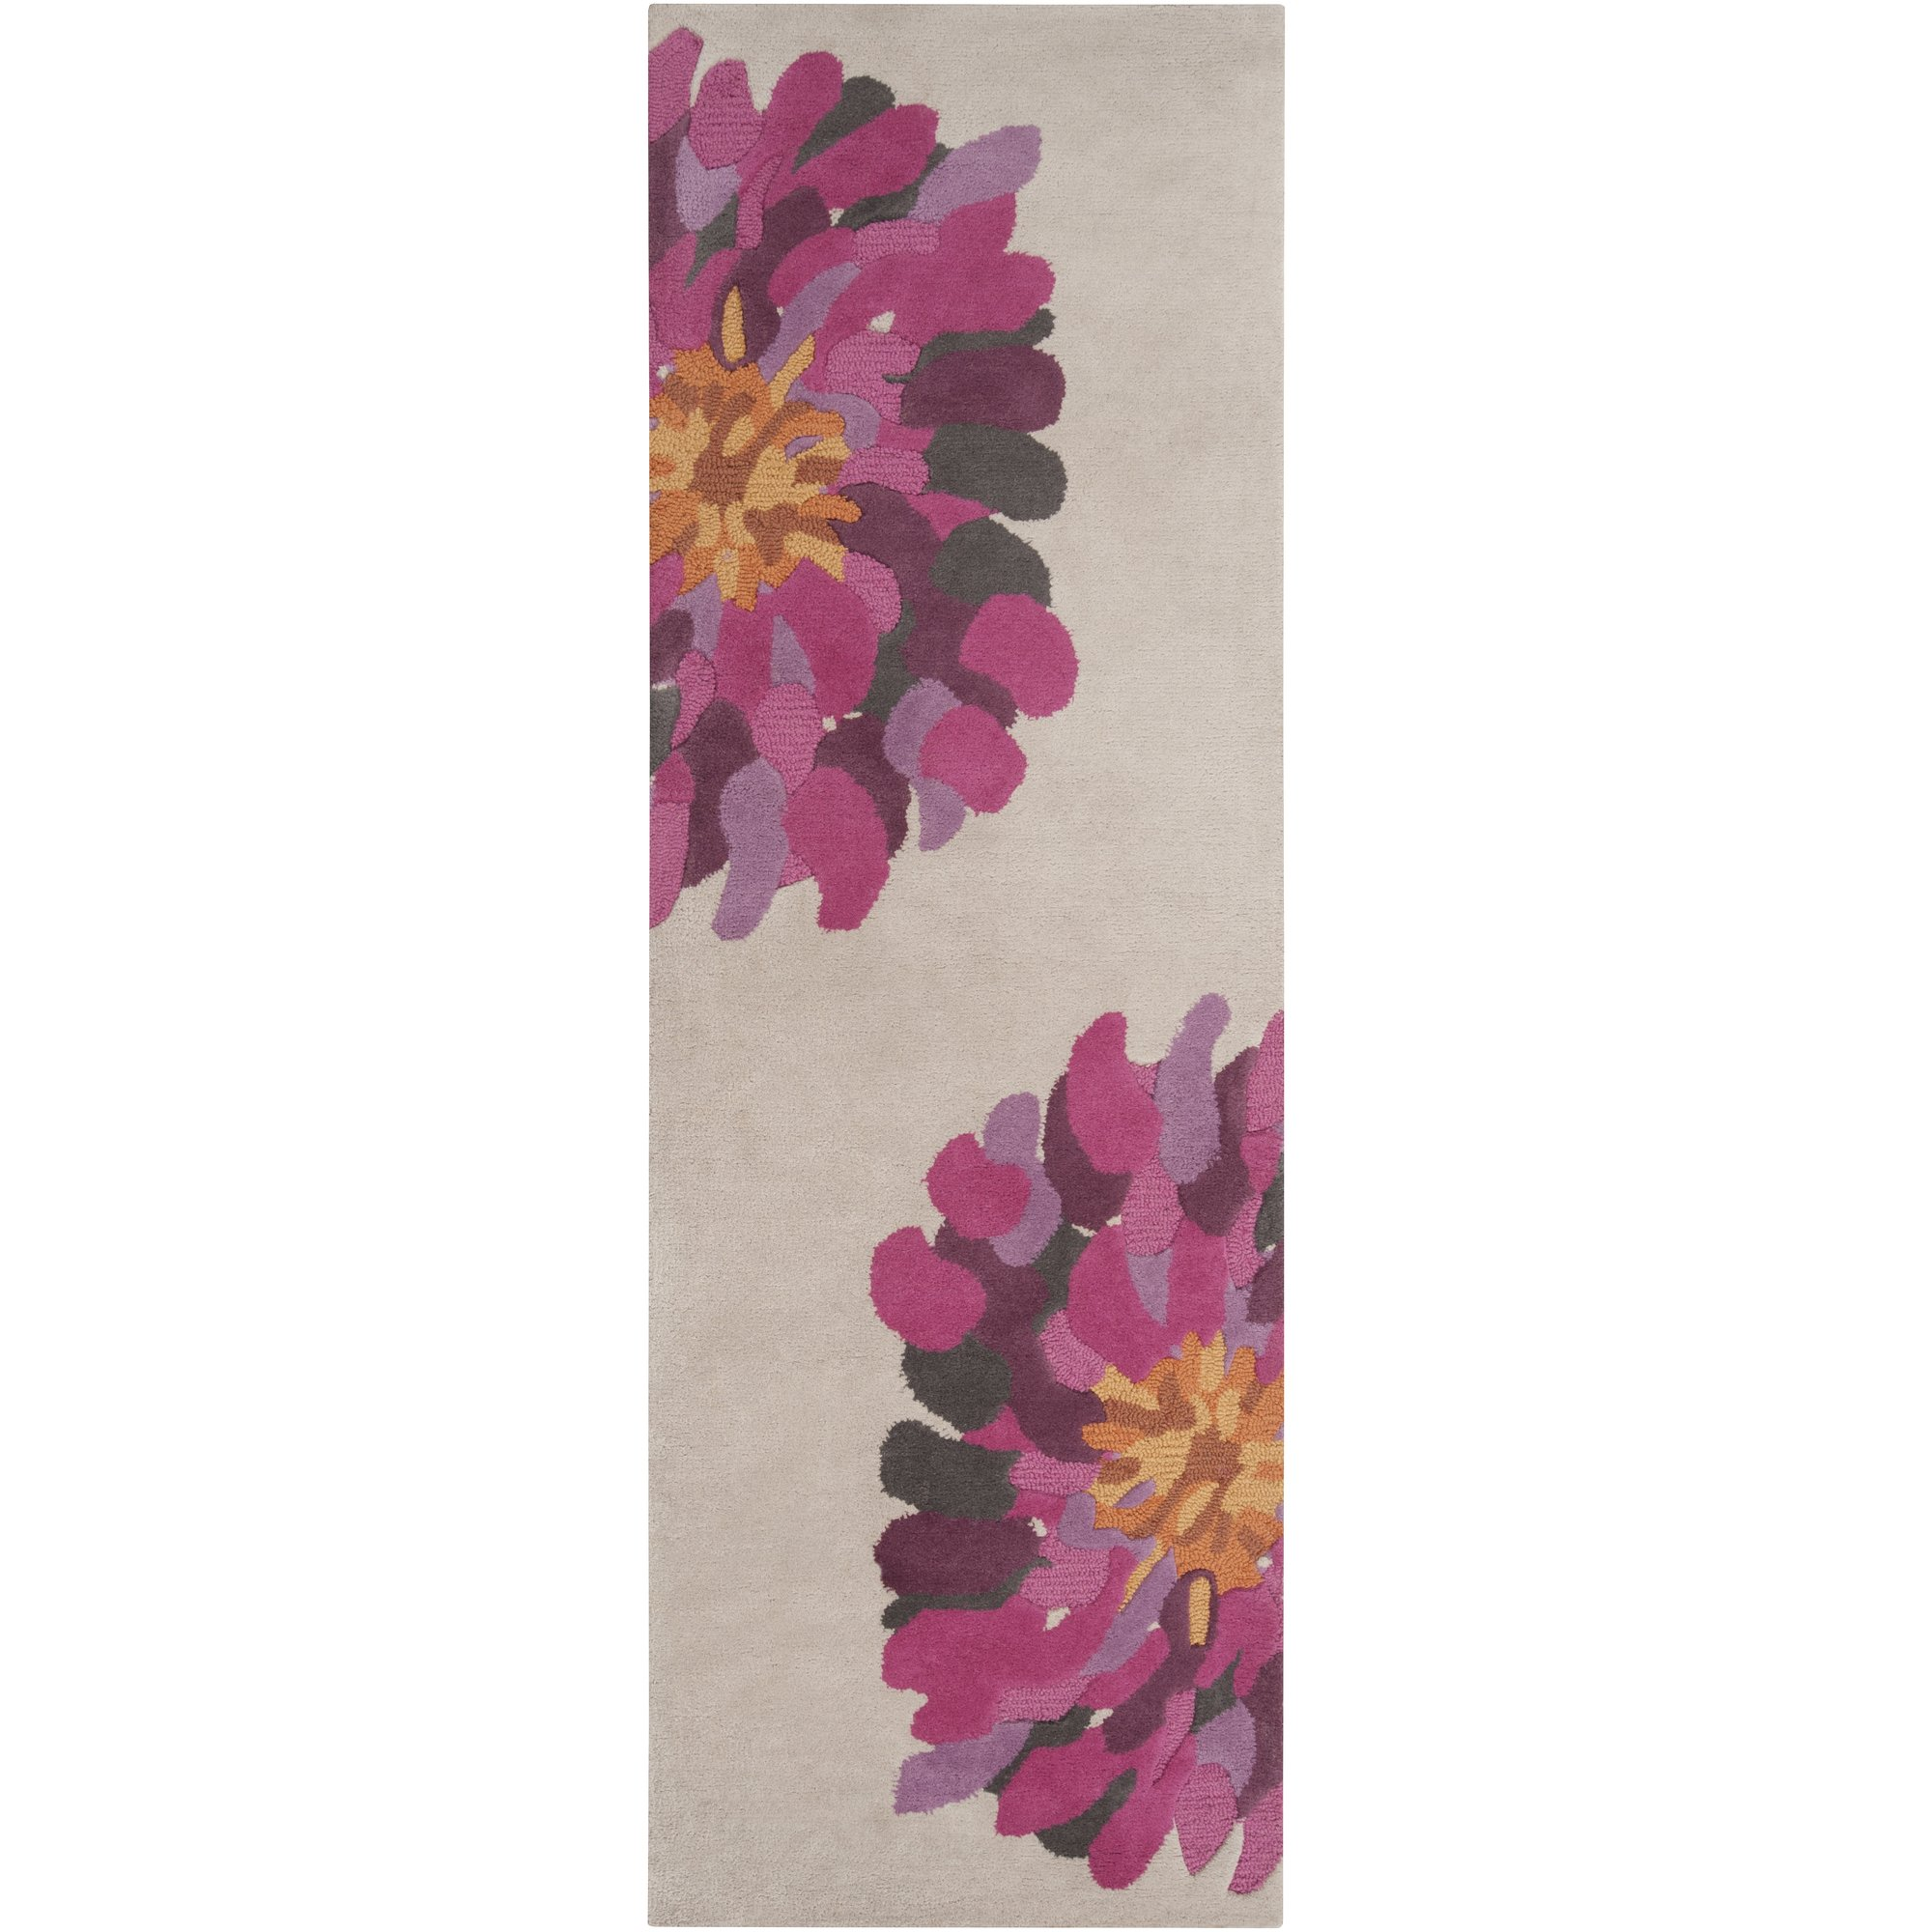 Surya Bombay BST-529 Contemporary Hand Tufted 100% New Zealand Wool Raspberry 2'6'' x 8' Floral Runner